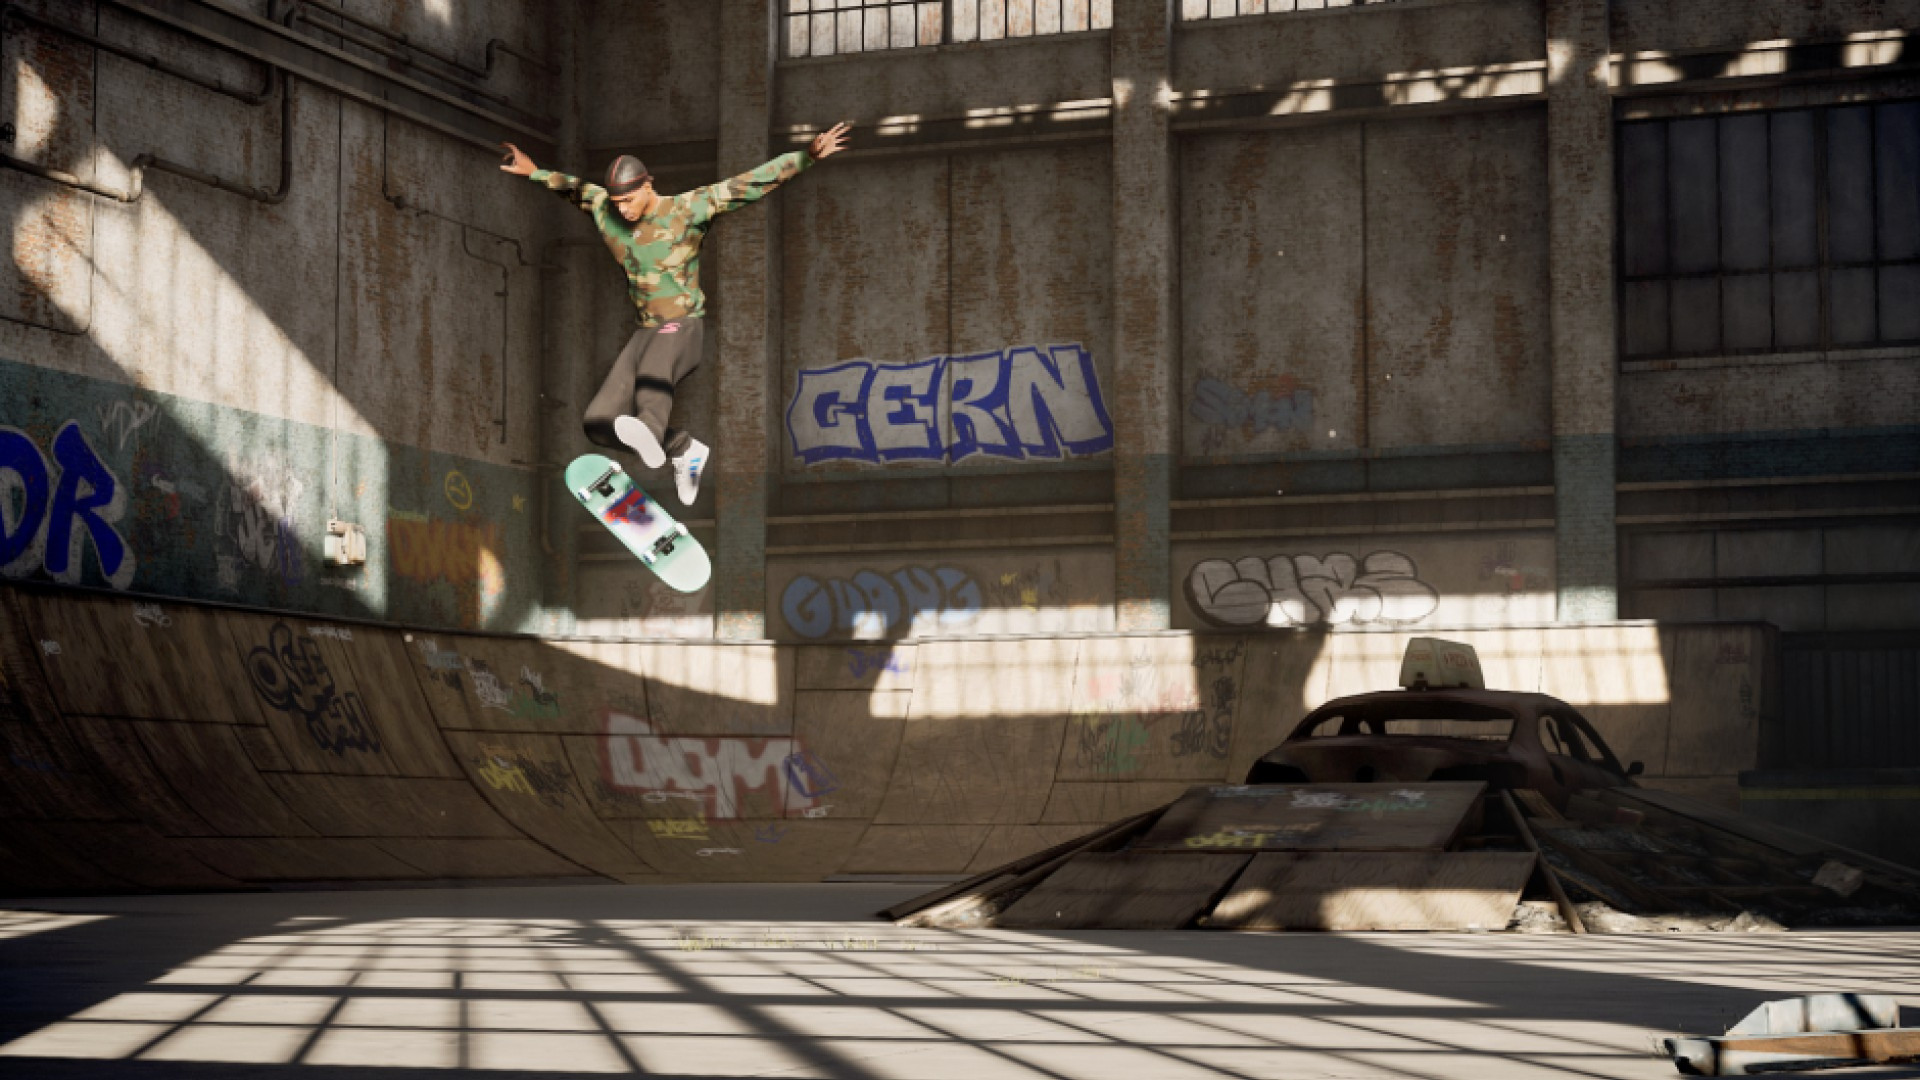 Tony Hawk's Pro Skater 1 + 2 PS5 Version Full Game Setup Free Download